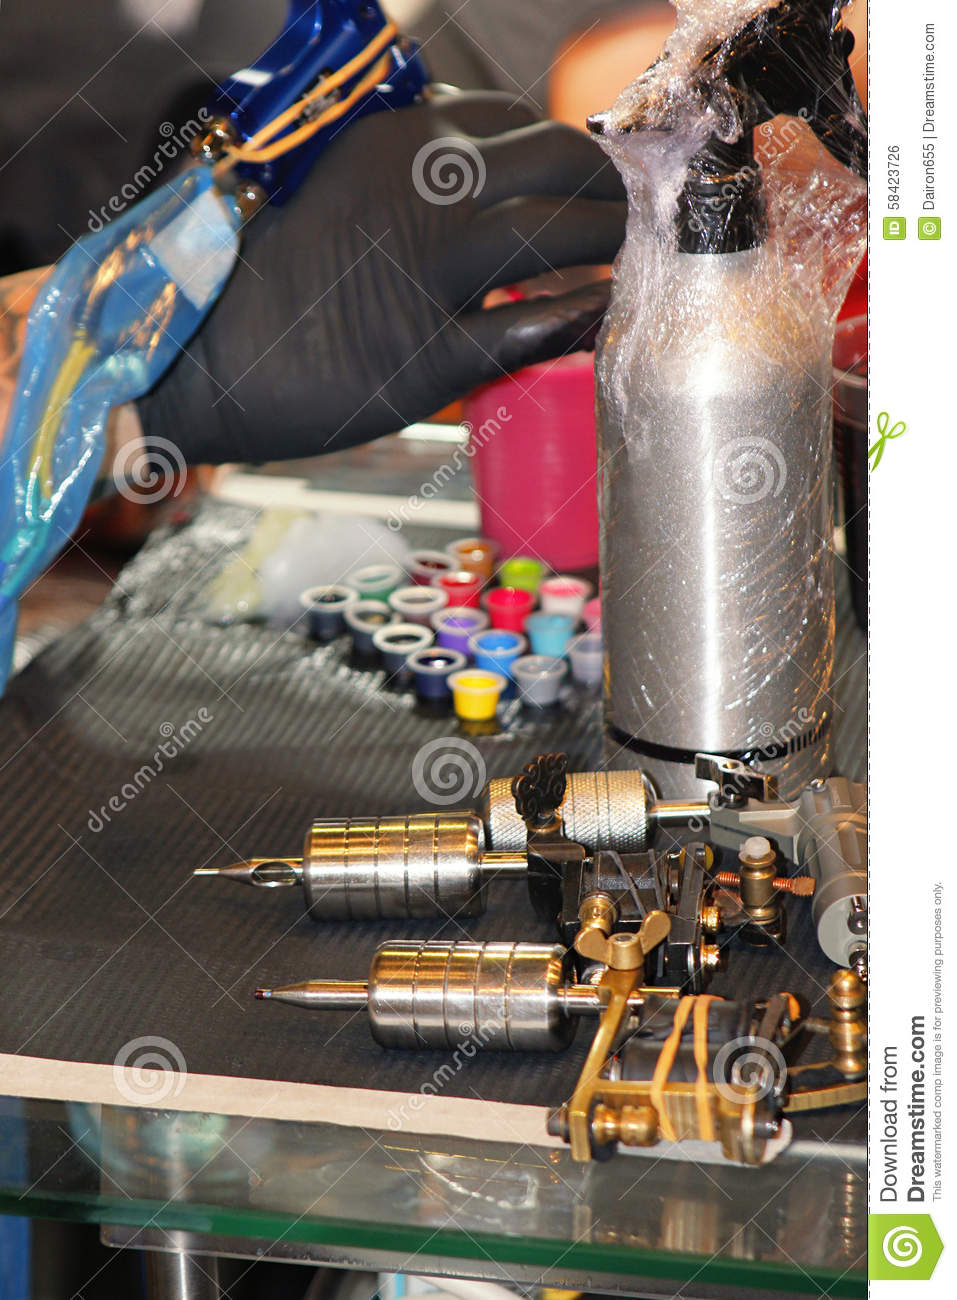 Tattoo equipment royalty free stock image cartoondealer for Where to get tattoo supplies